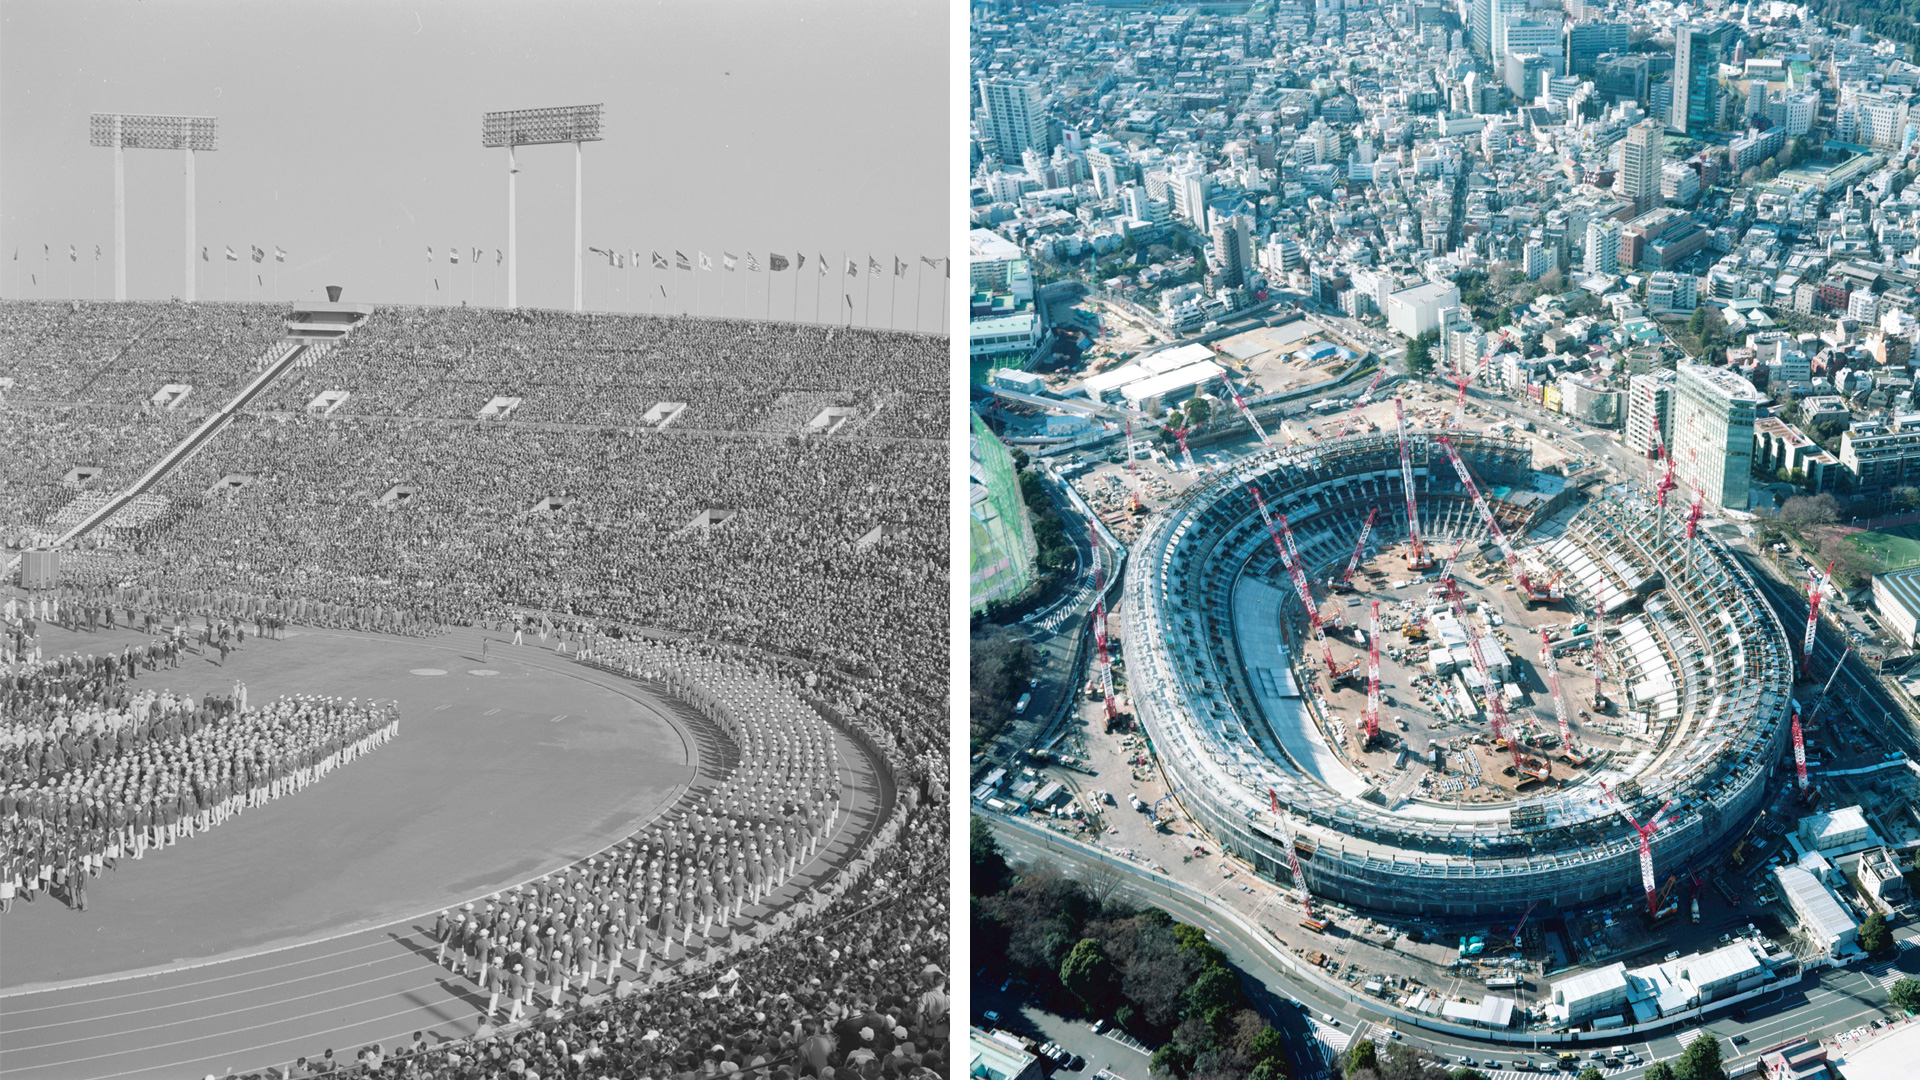 Tokyo Olympics Opening Ceremony at National Stadium (1964); New National Stadium (2017) | Made in Tokyo | STIRworld